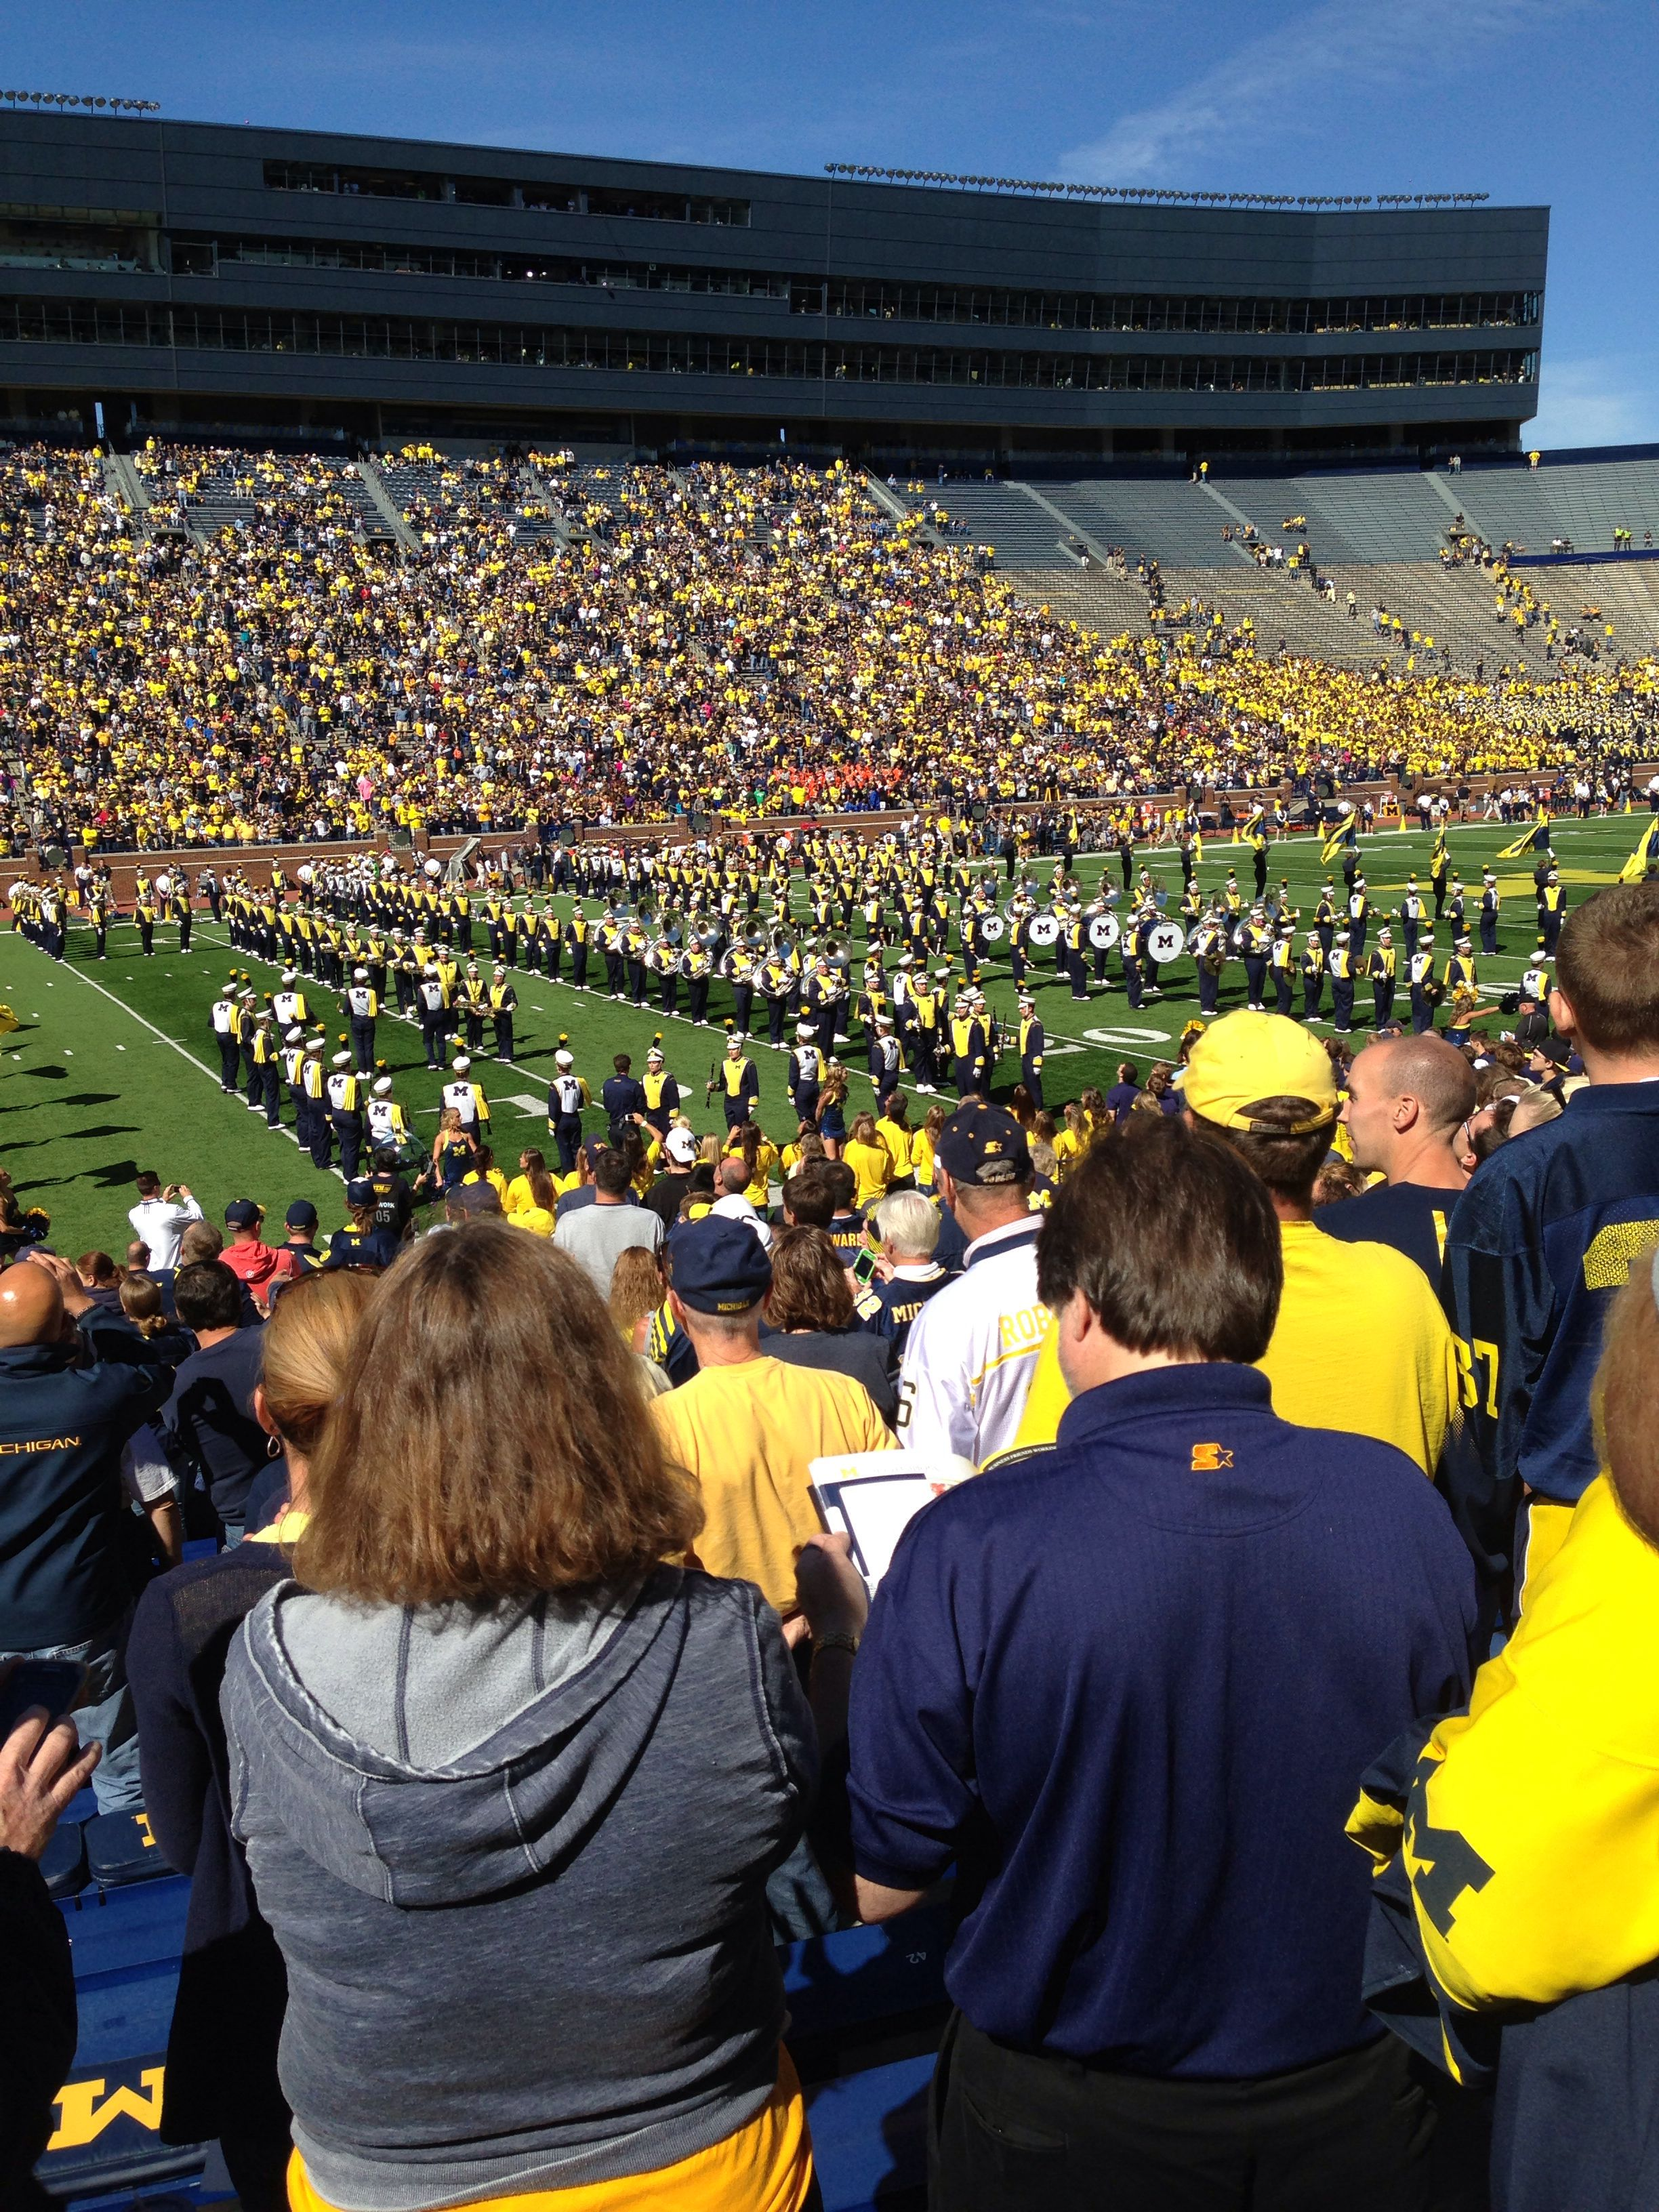 At The Big House watching the Michigan Wolverines marching